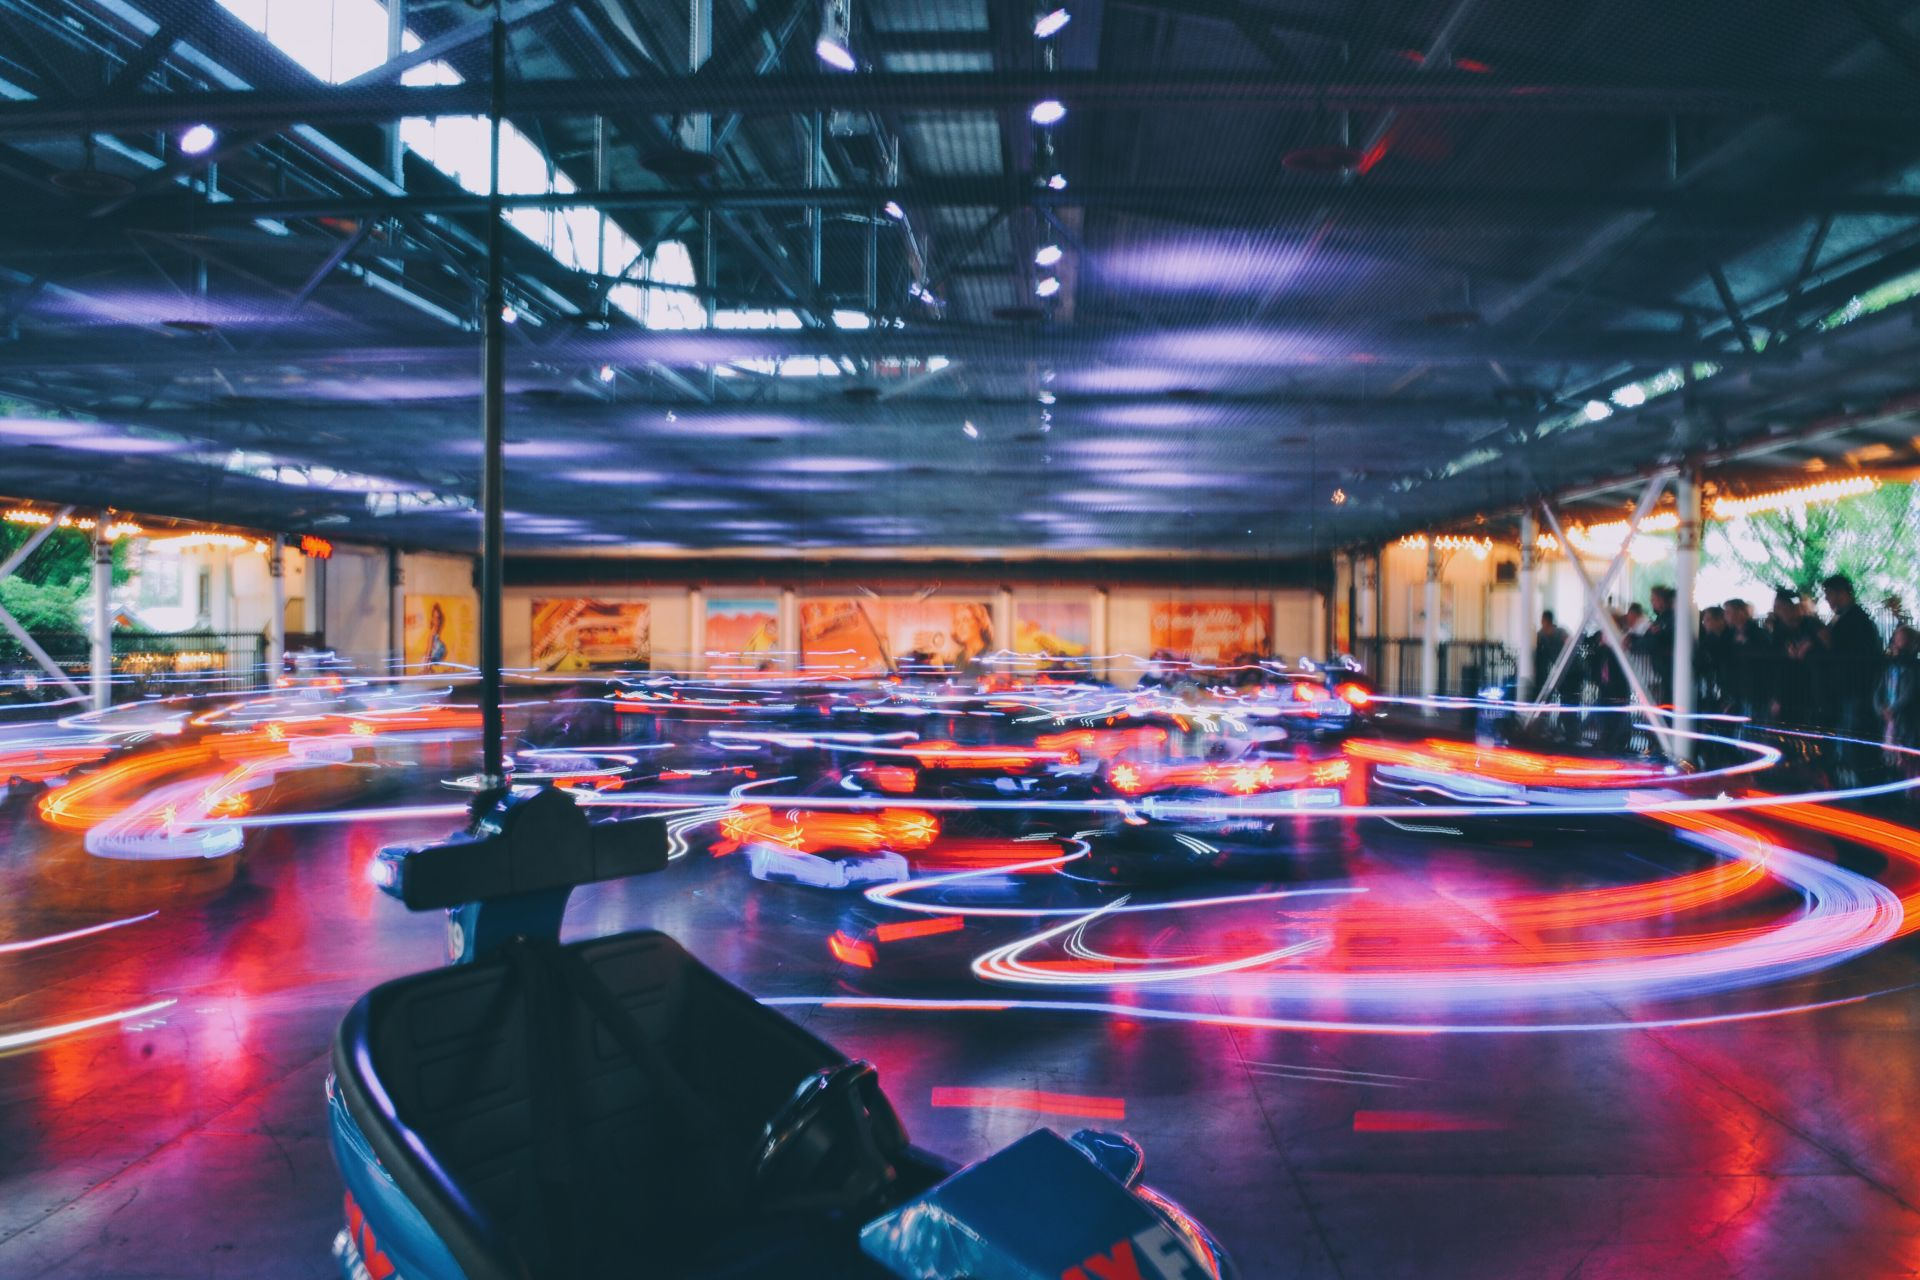 bumper-cars-light-trails_t20_QQJJZa.jpg